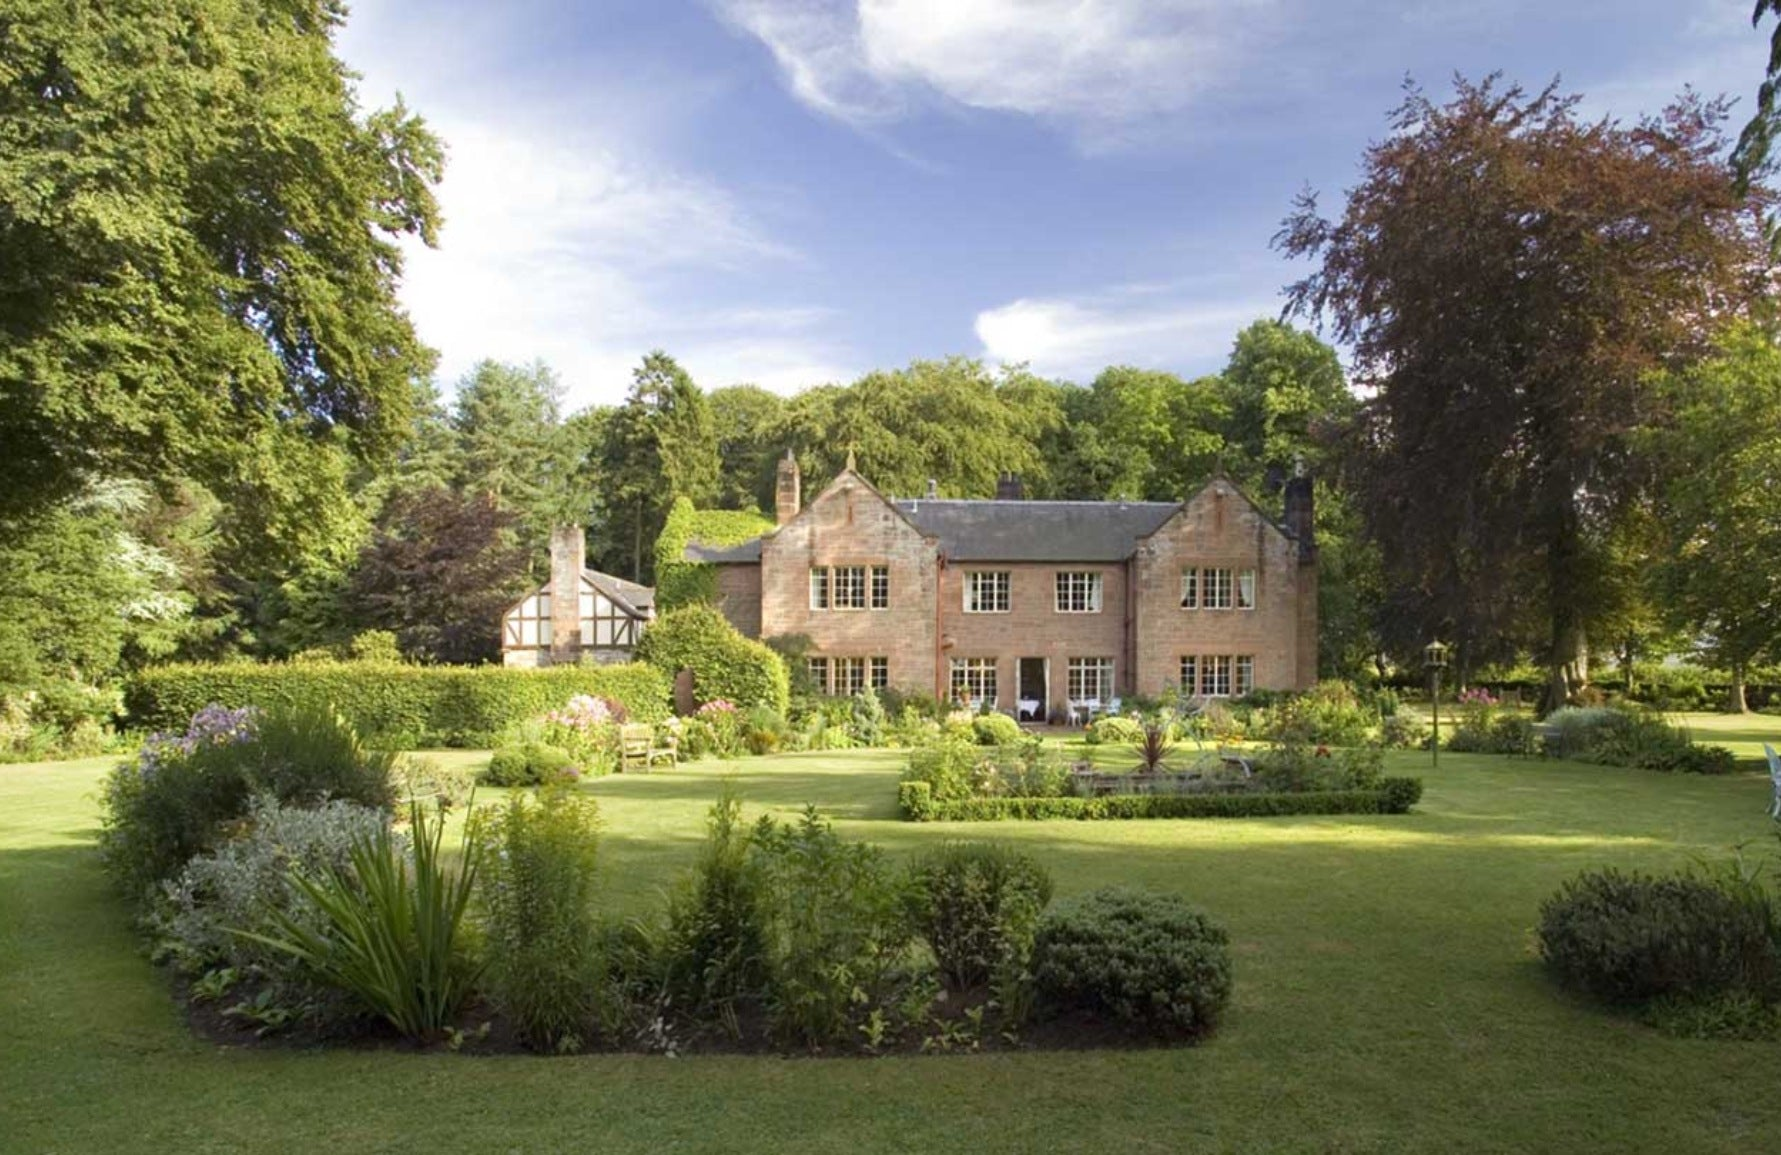 Trigony House Hotel & Garden Spa | Read more about Britain's top spa hotels at LuxDeco.com